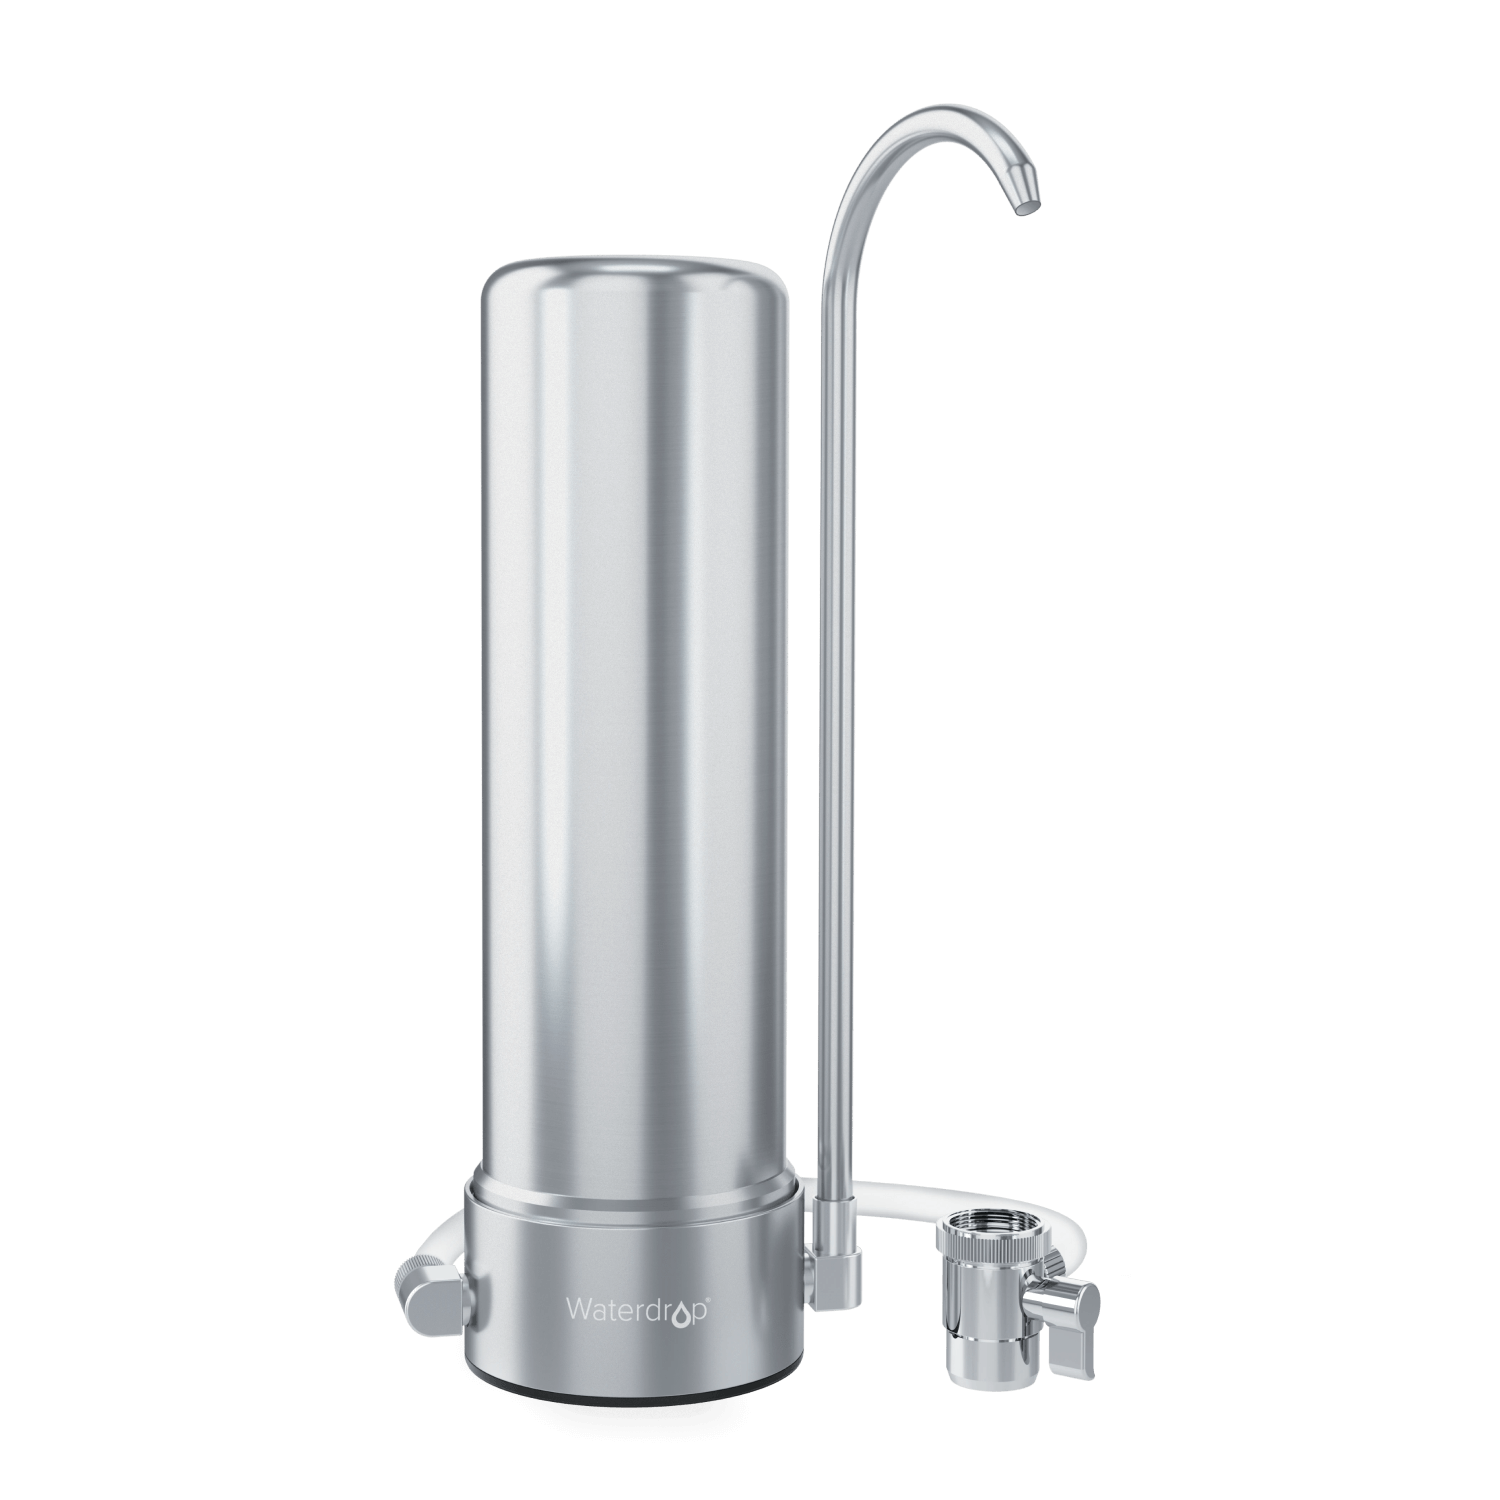 Countertop Faucet Water Filter System